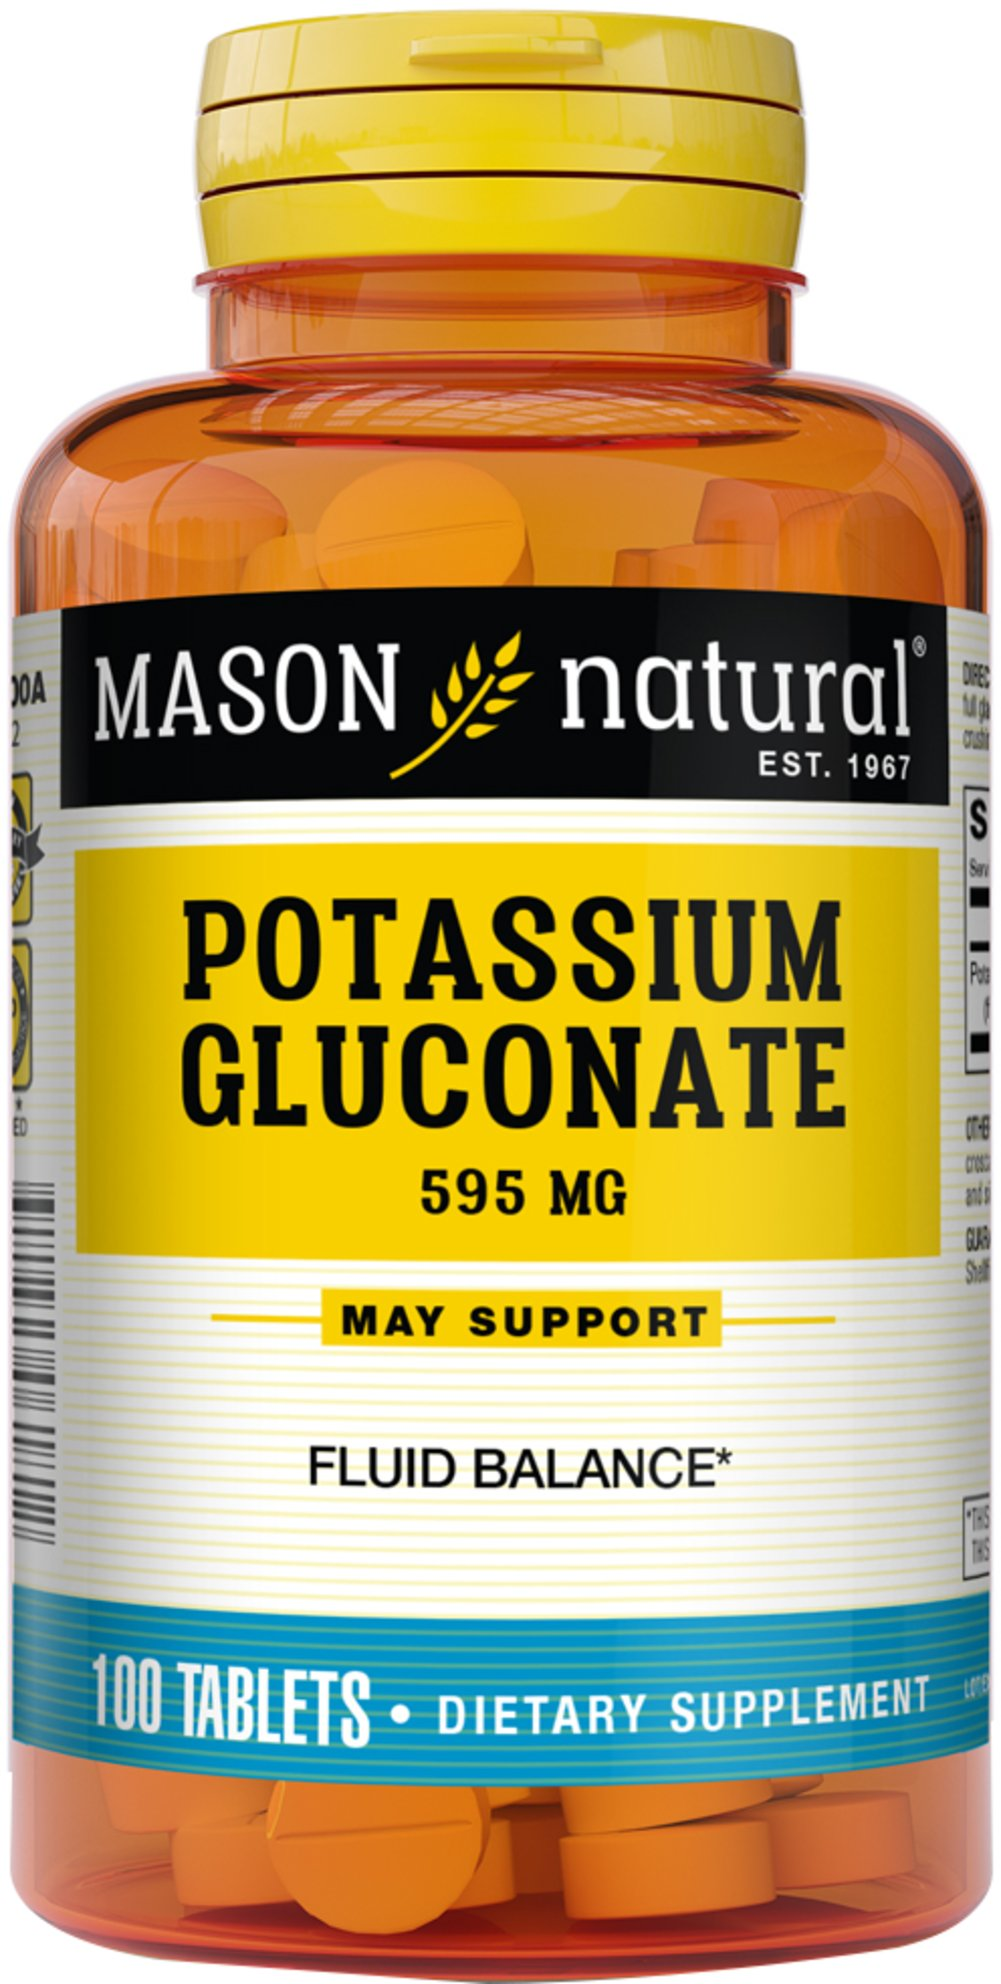 Potassium Gluconate 595 mg <p>From the Manufacturer's Label:<br /></p><p> Potassium Gluconate 595 mg is manufactured by Mason Naturals.</p><p></p> 100 Tablets 595 mg $4.99